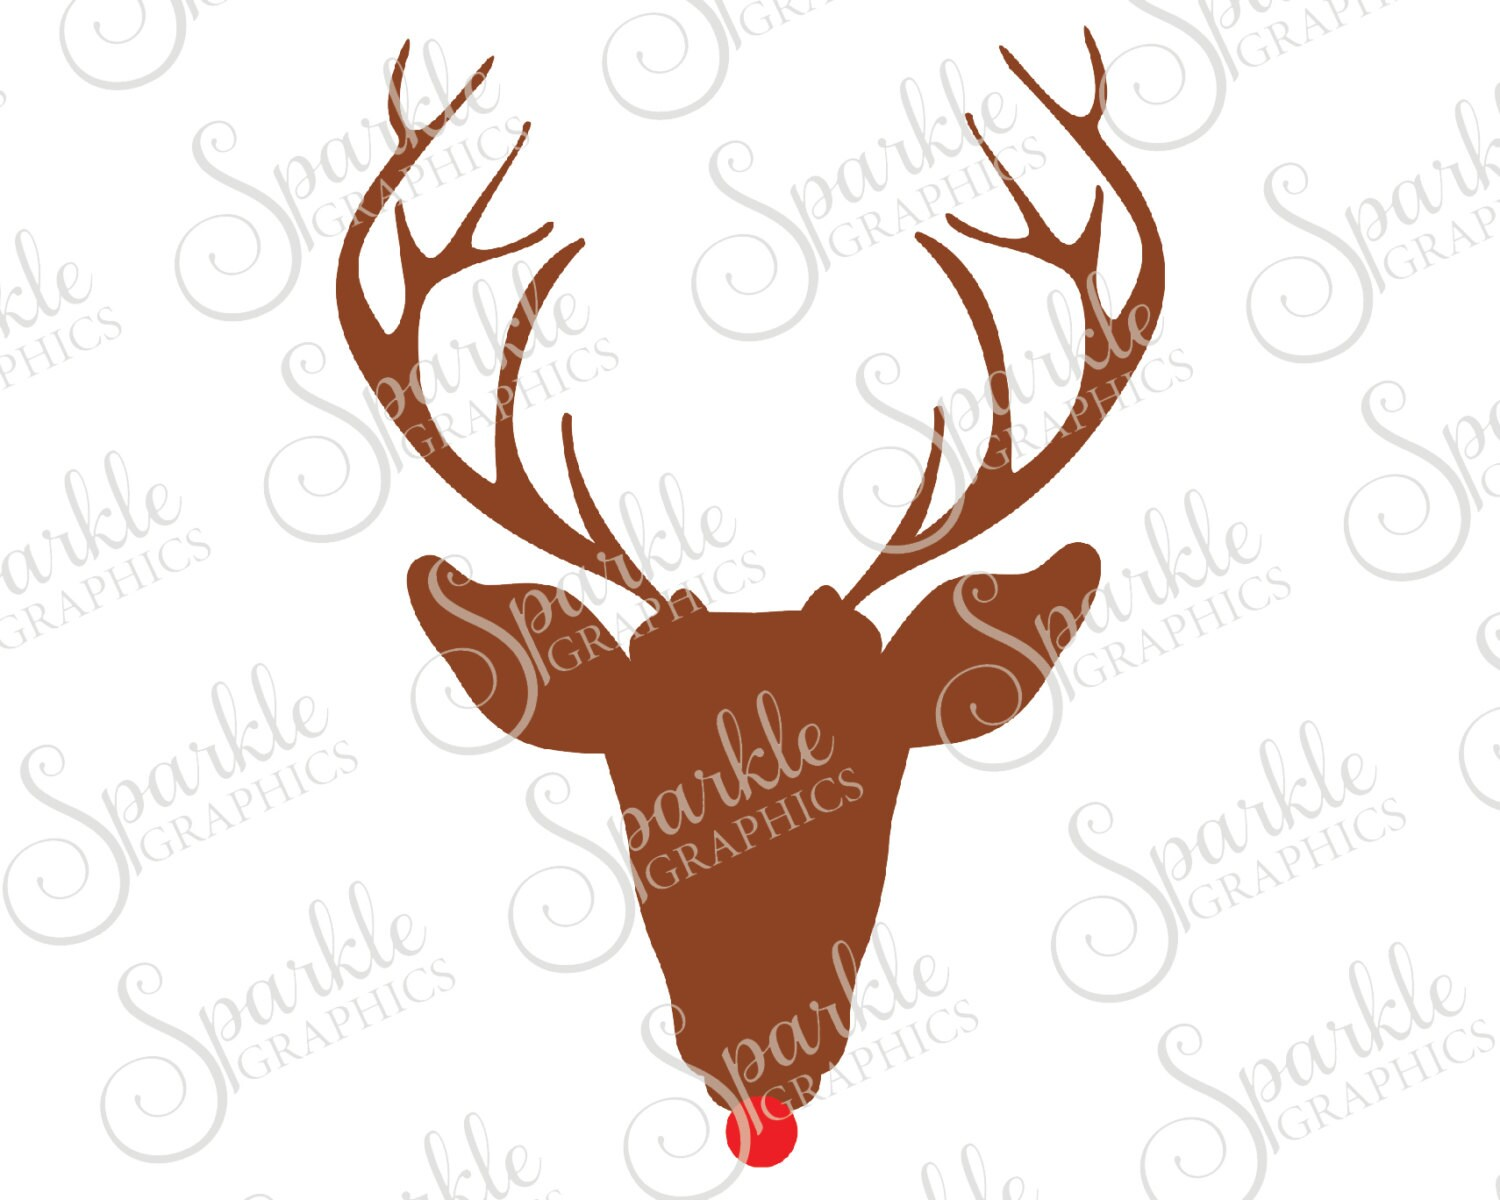 Rudolph SVG Christmas Deer Red Nose Reindeer Santa Xmas Clipart Svg Dxf Eps Png Silhouette Cricut Cut File Commercial Use